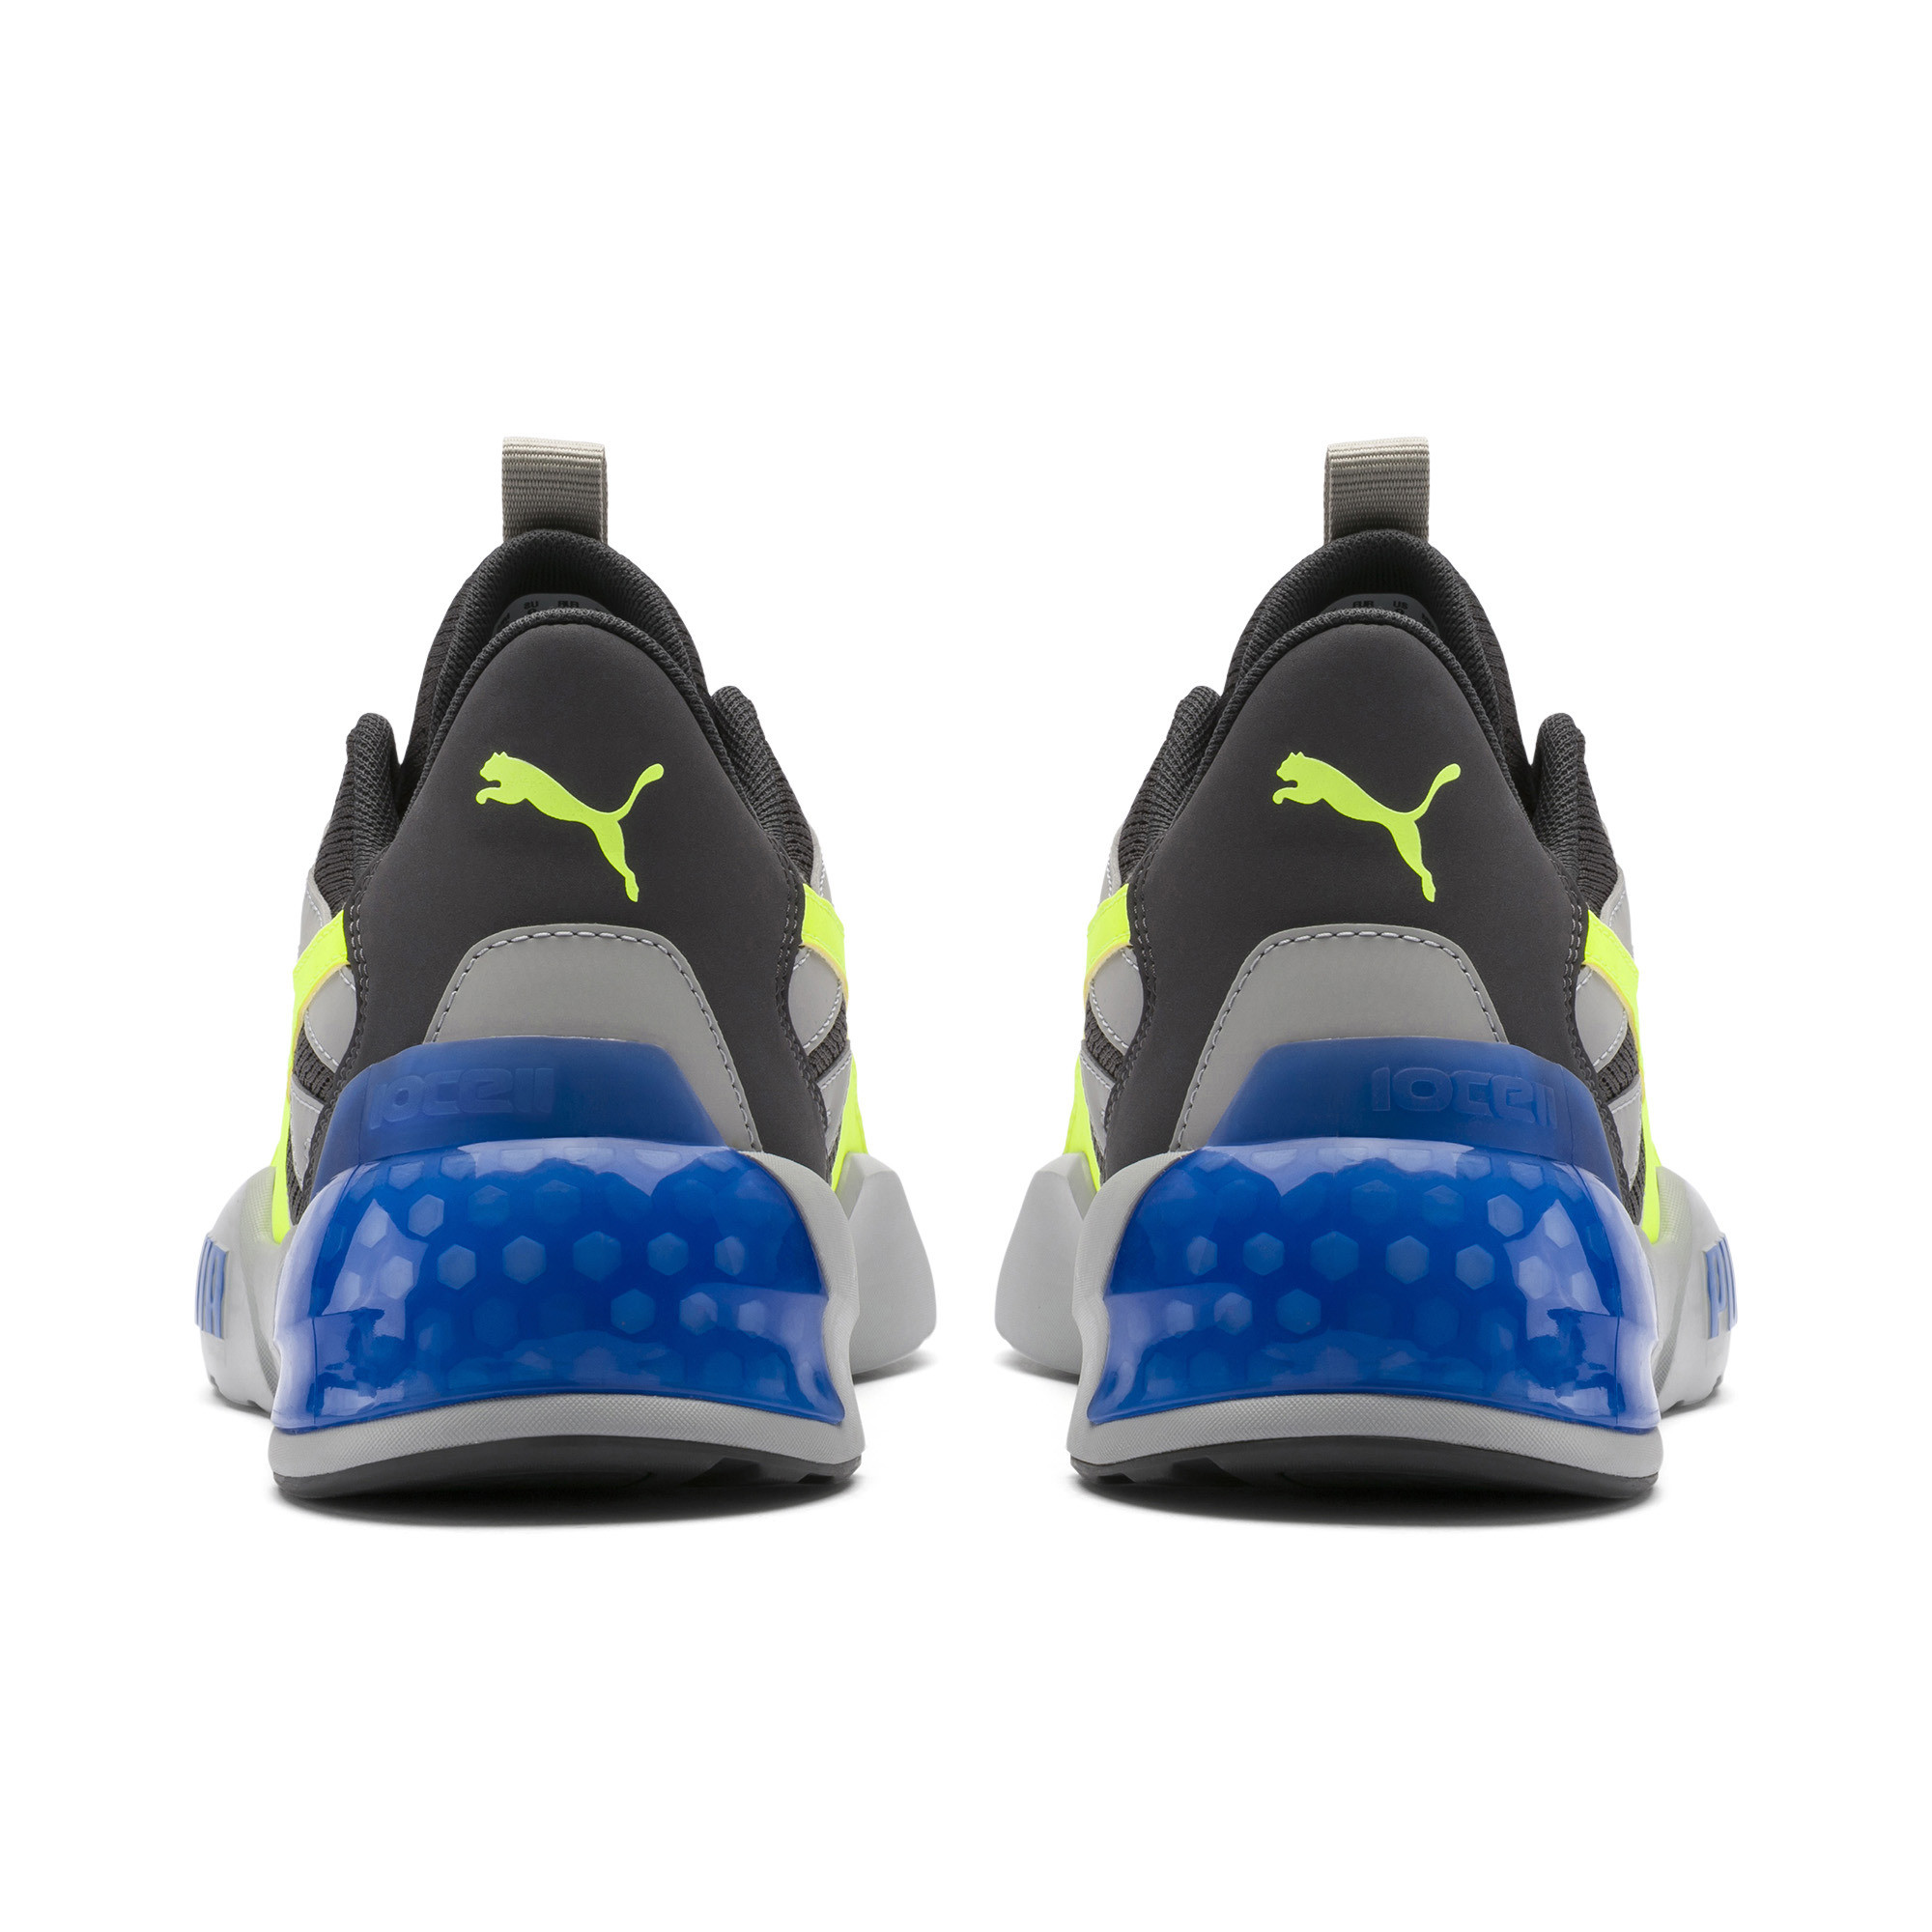 PUMA-Men-039-s-CELL-Pharos-Training-Shoes thumbnail 6